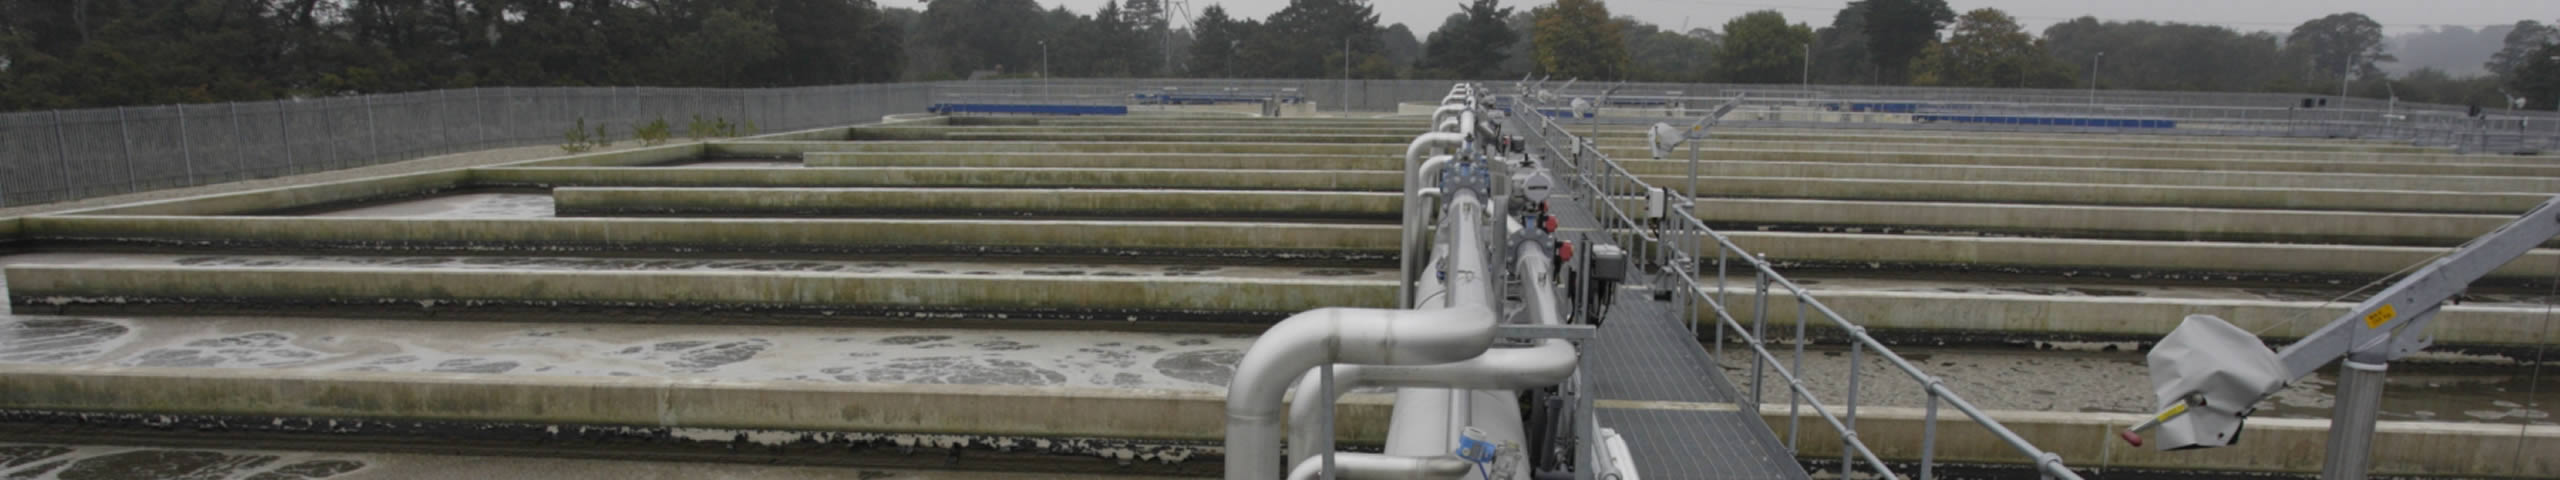 Waste Water and Water Treatment